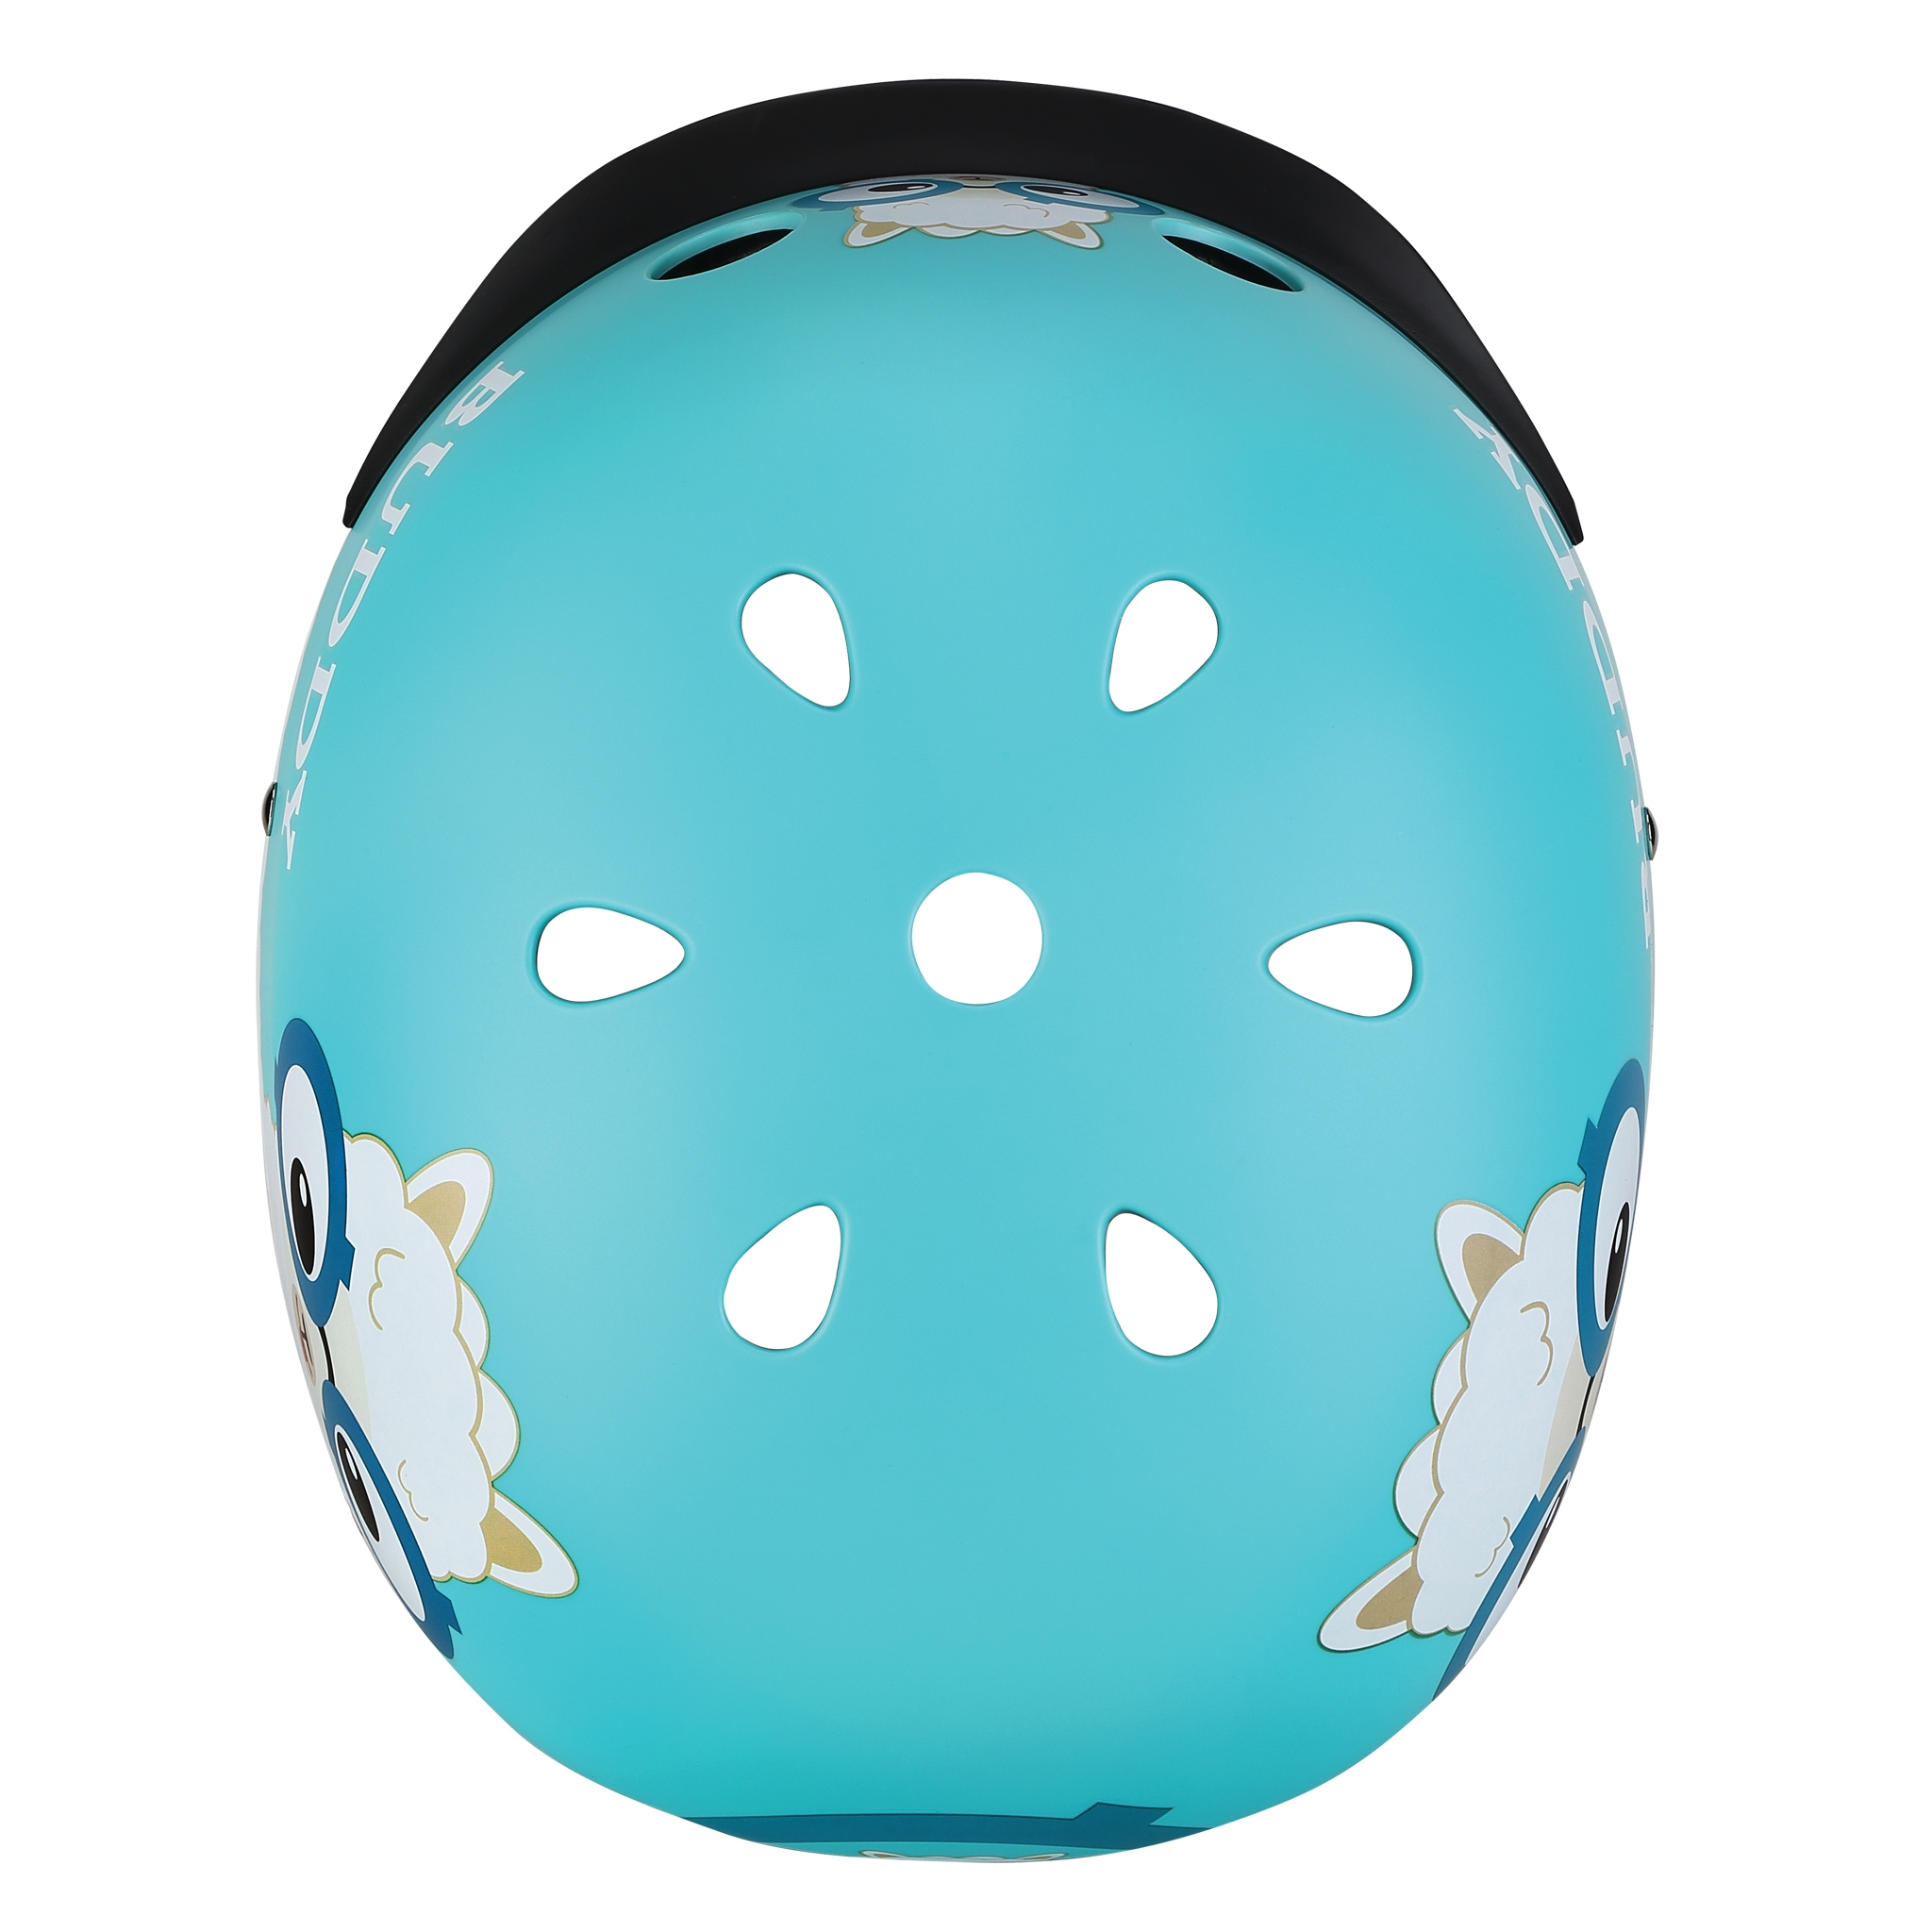 ELITE-helmets-best-scooter-helmets-for-kids-with-air-vents-cooling-system-blue 2